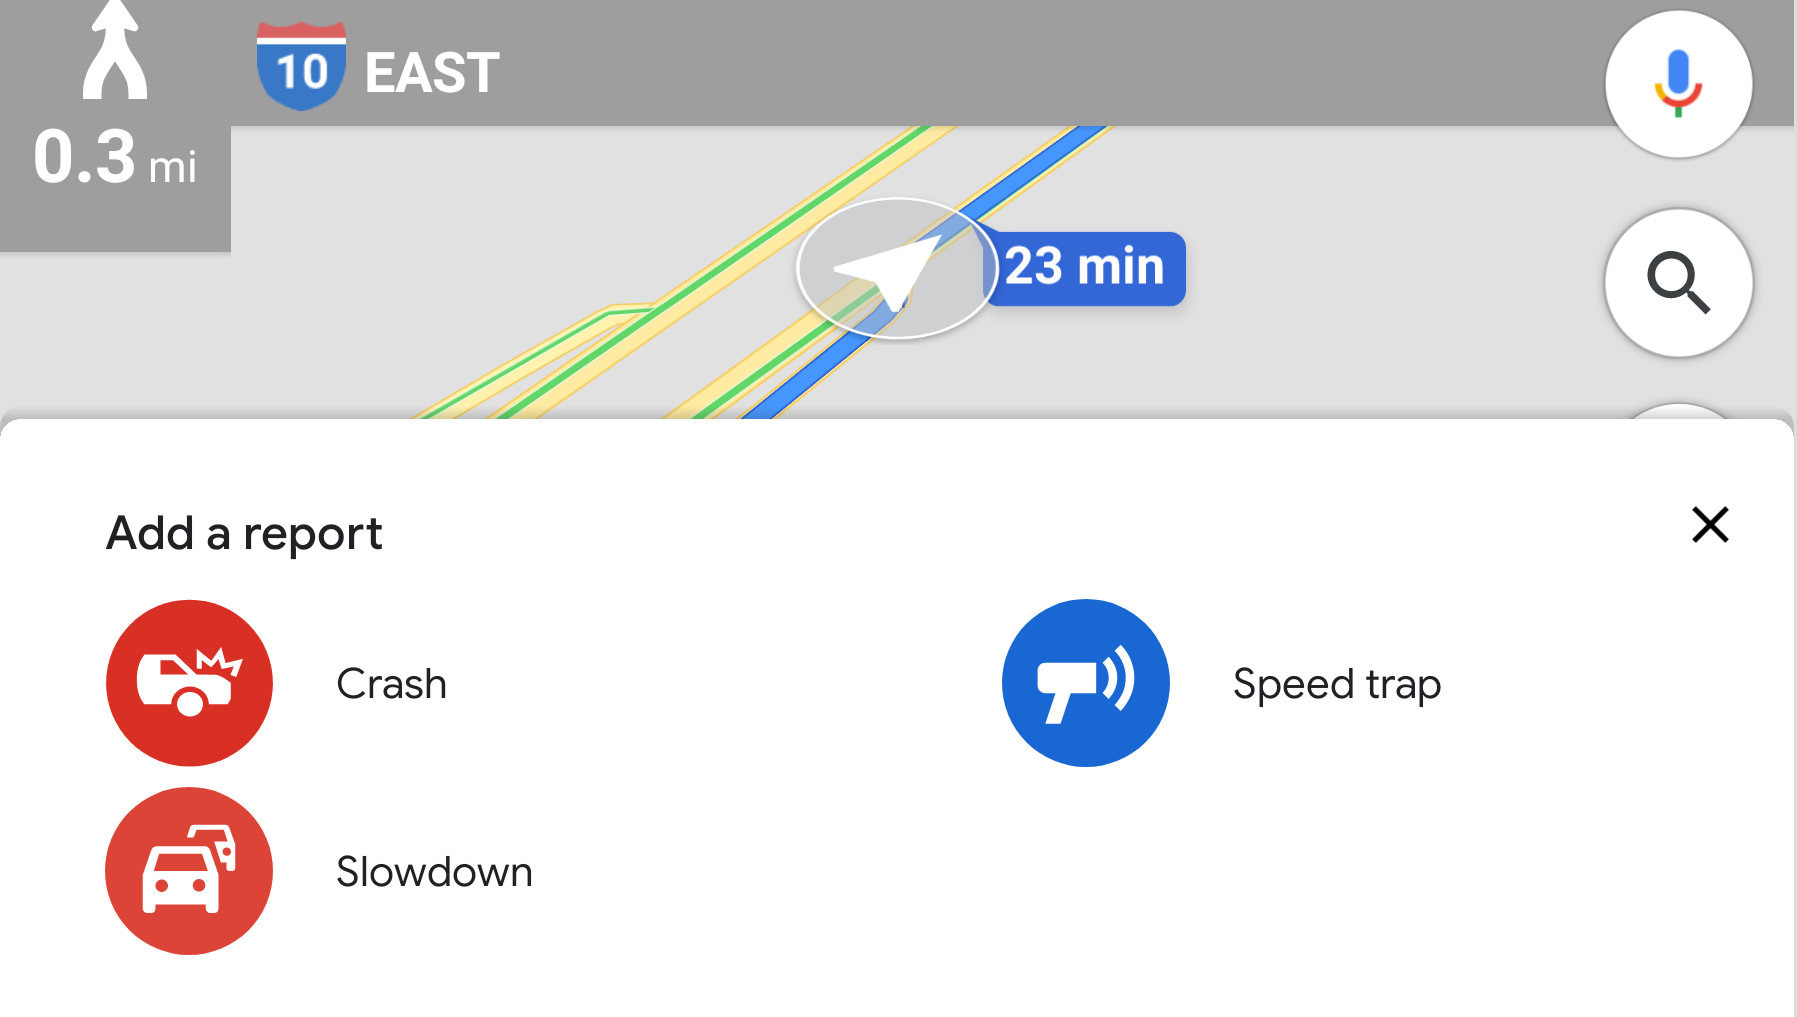 Google Maps adds traffic slowdowns to incident reporting on gppgle maps, microsoft maps, googie maps, stanford university maps, search maps, gogole maps, waze maps, amazon fire phone maps, googlr maps, iphone maps, goolge maps, ipad maps, aerial maps, aeronautical maps, android maps, online maps, bing maps, topographic maps, msn maps, road map usa states maps,